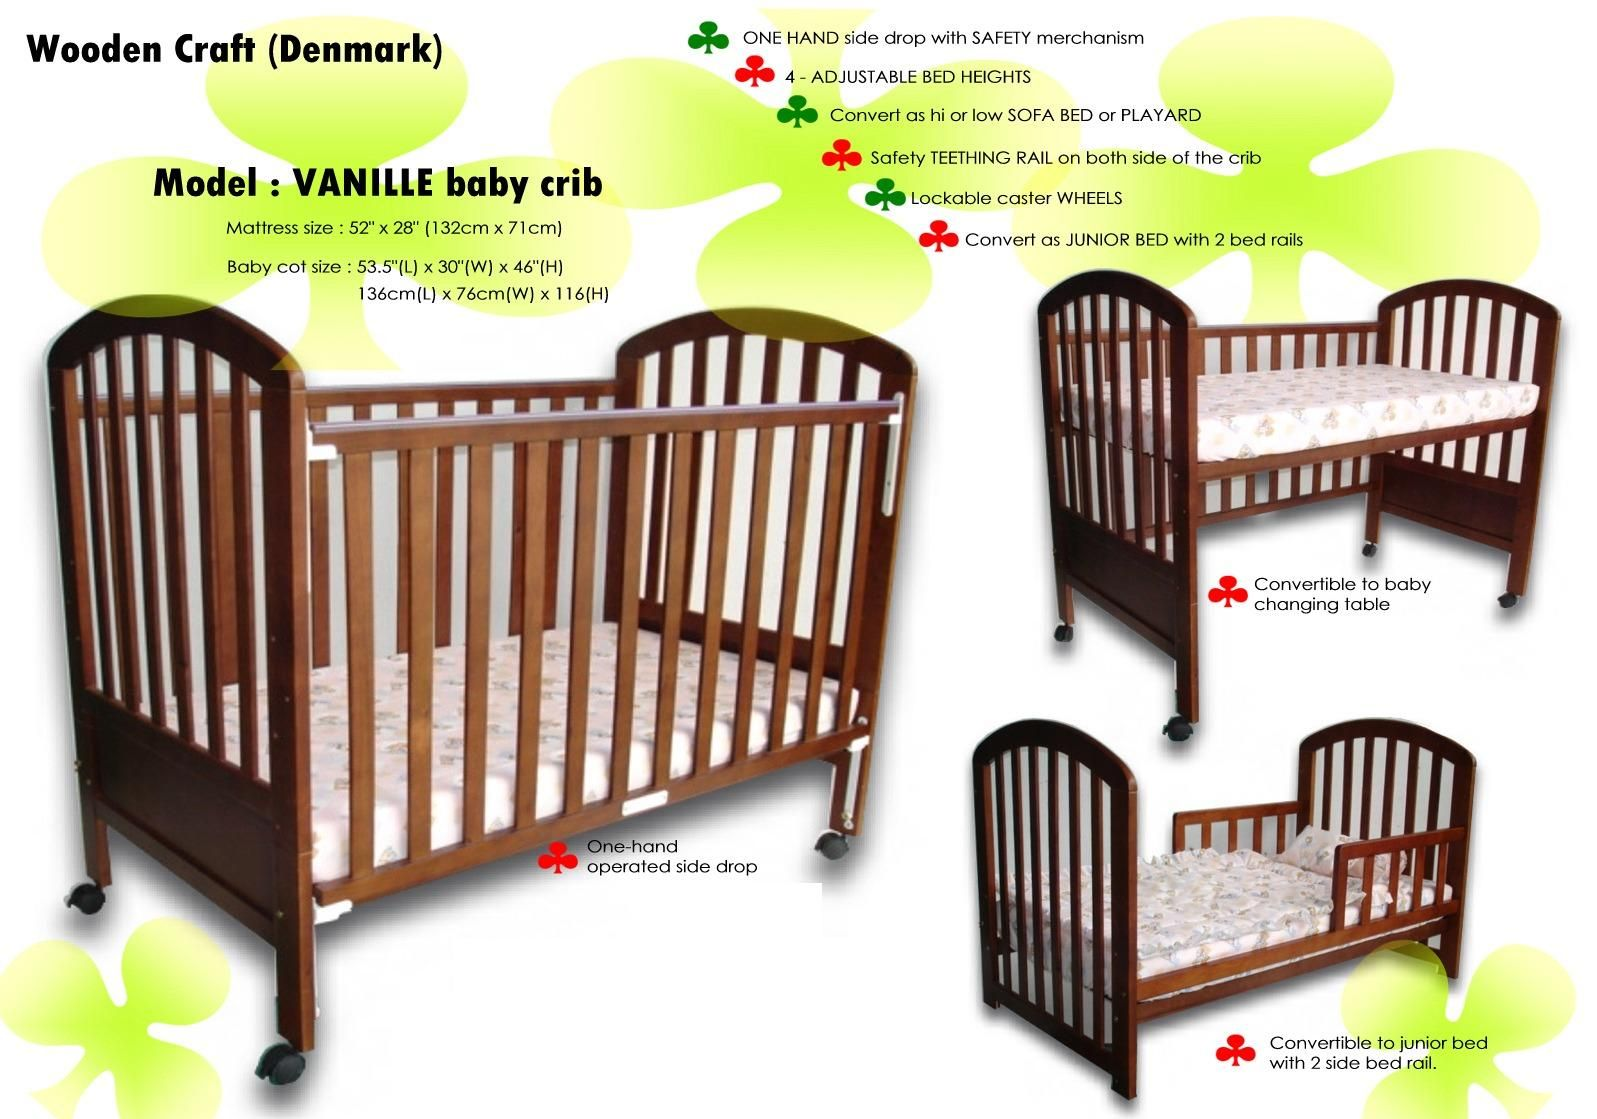 Crib heights for babies - Baby Cots Vanille Convertible Baby Crib Cot Bed Newborn To 7 Years